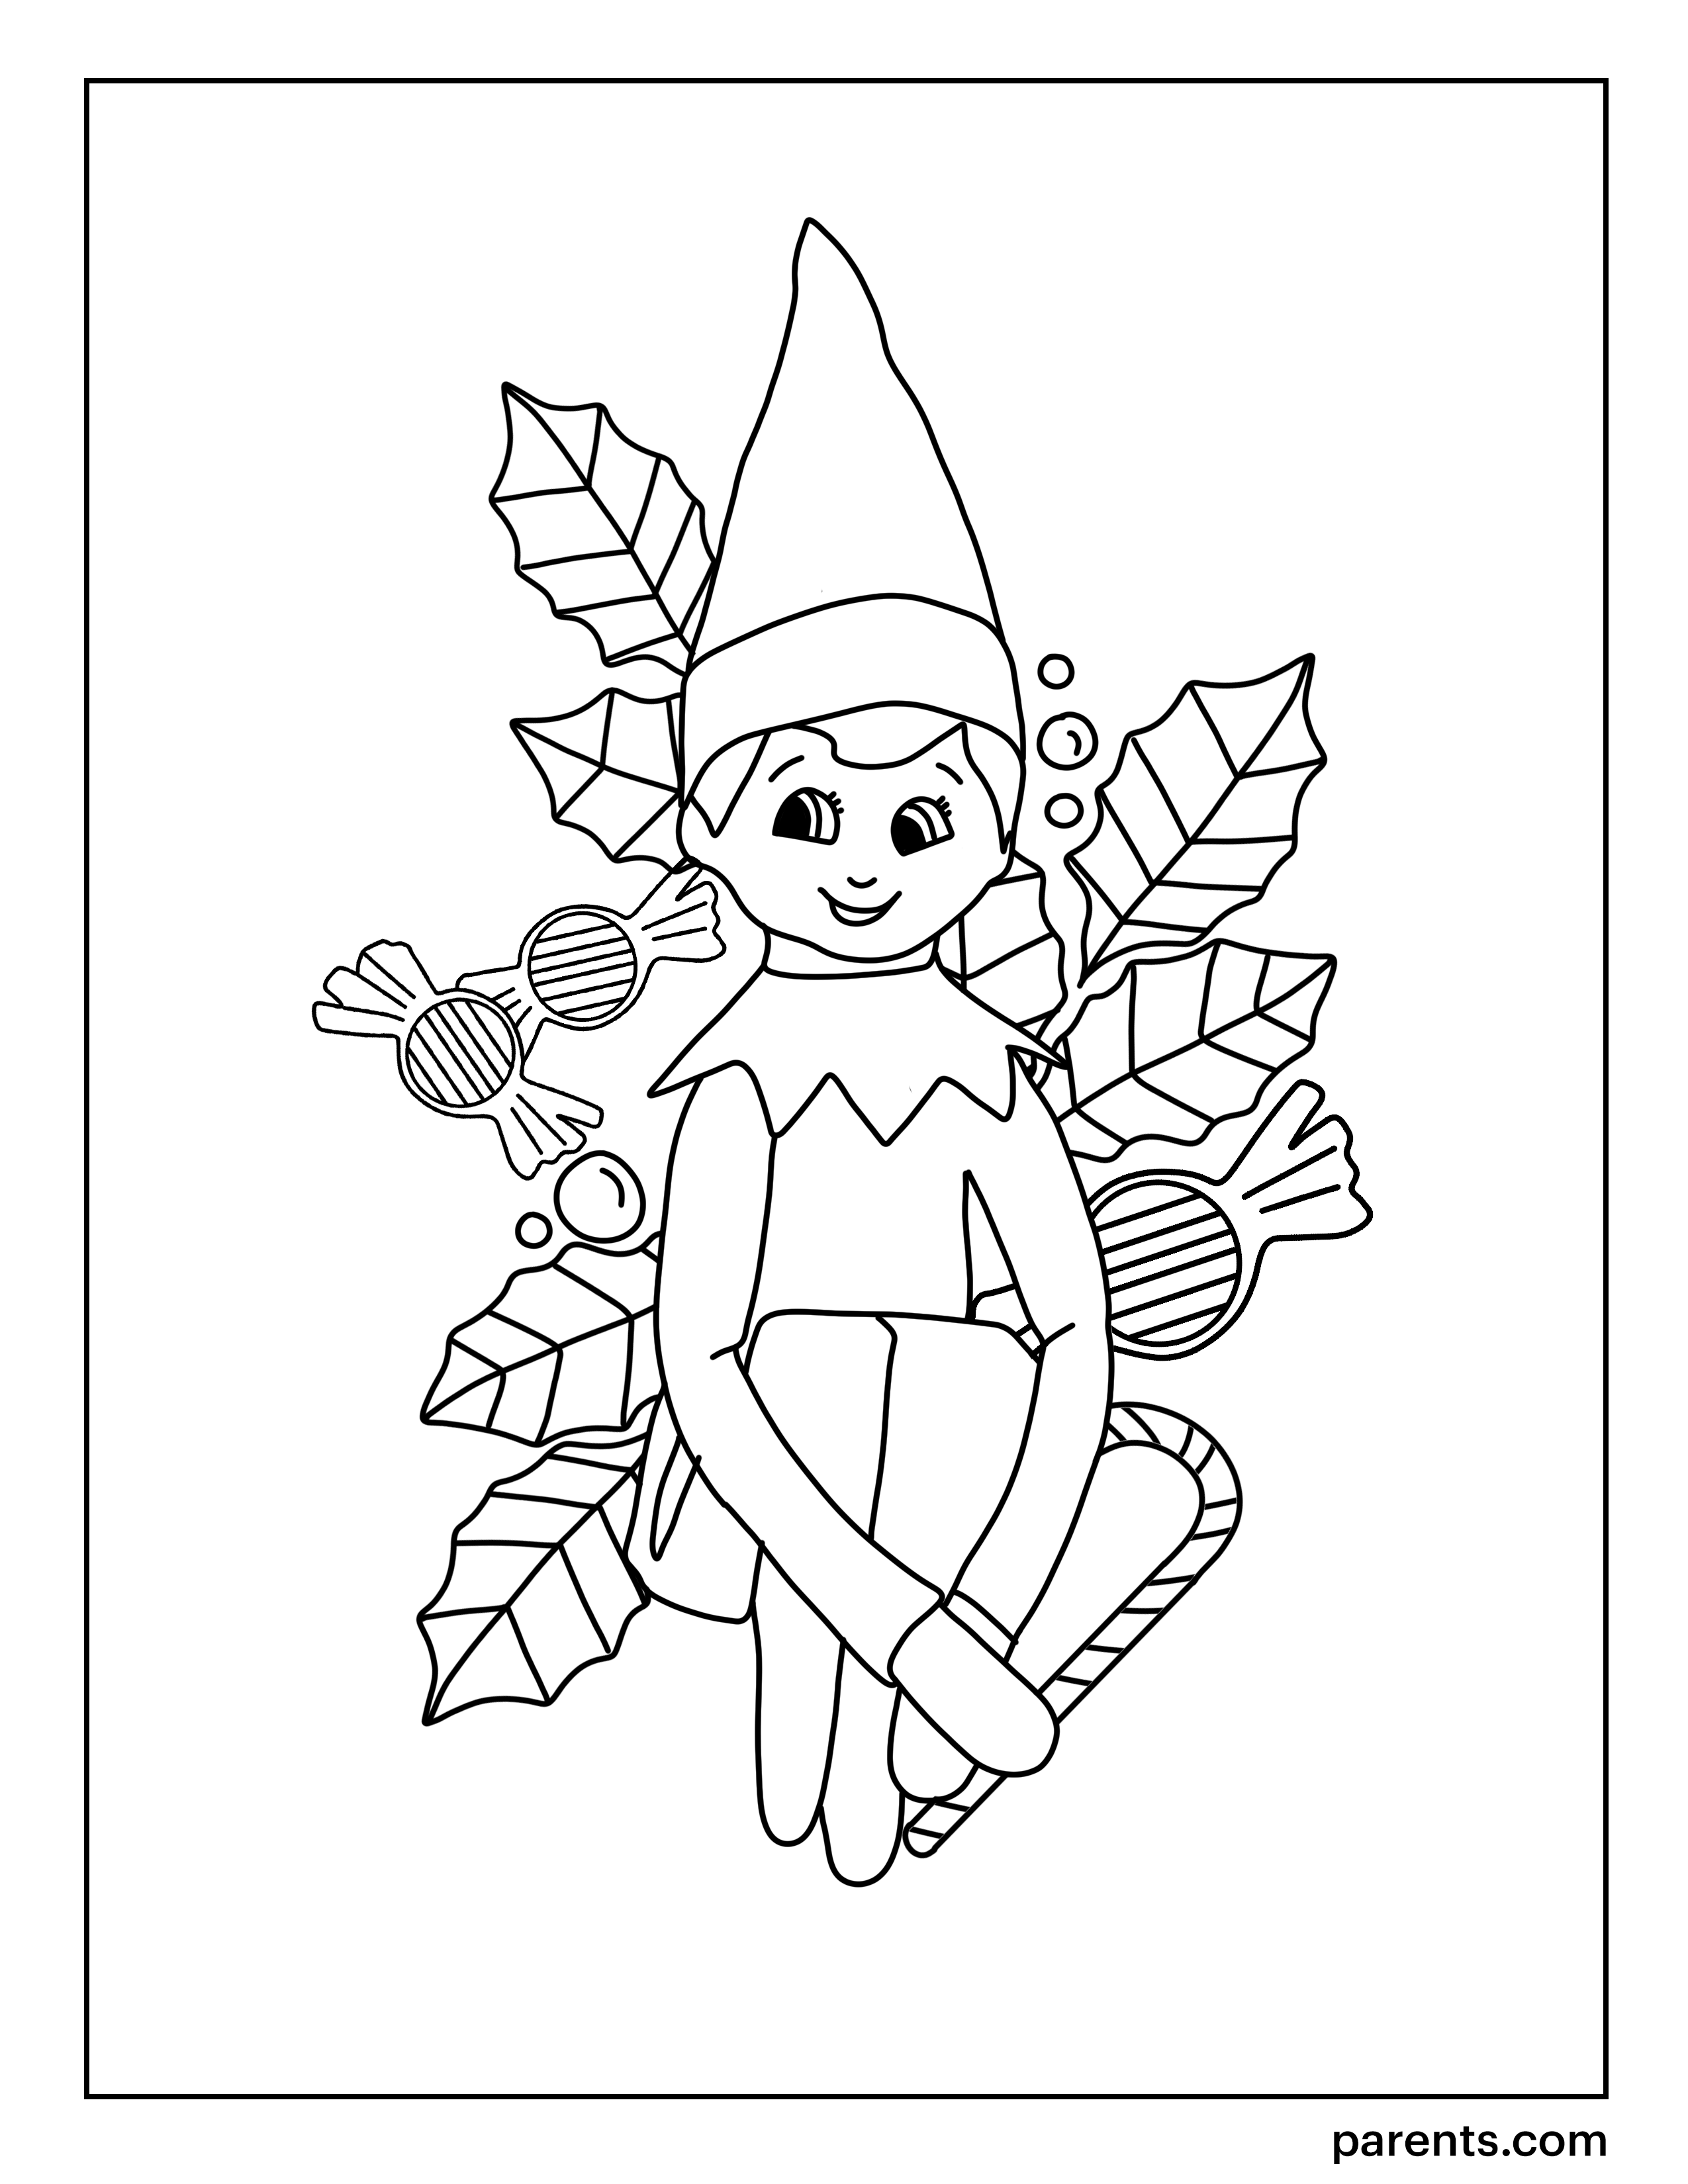 elf on the shelf coloring page my cup overflows december 2017 page elf coloring the on shelf